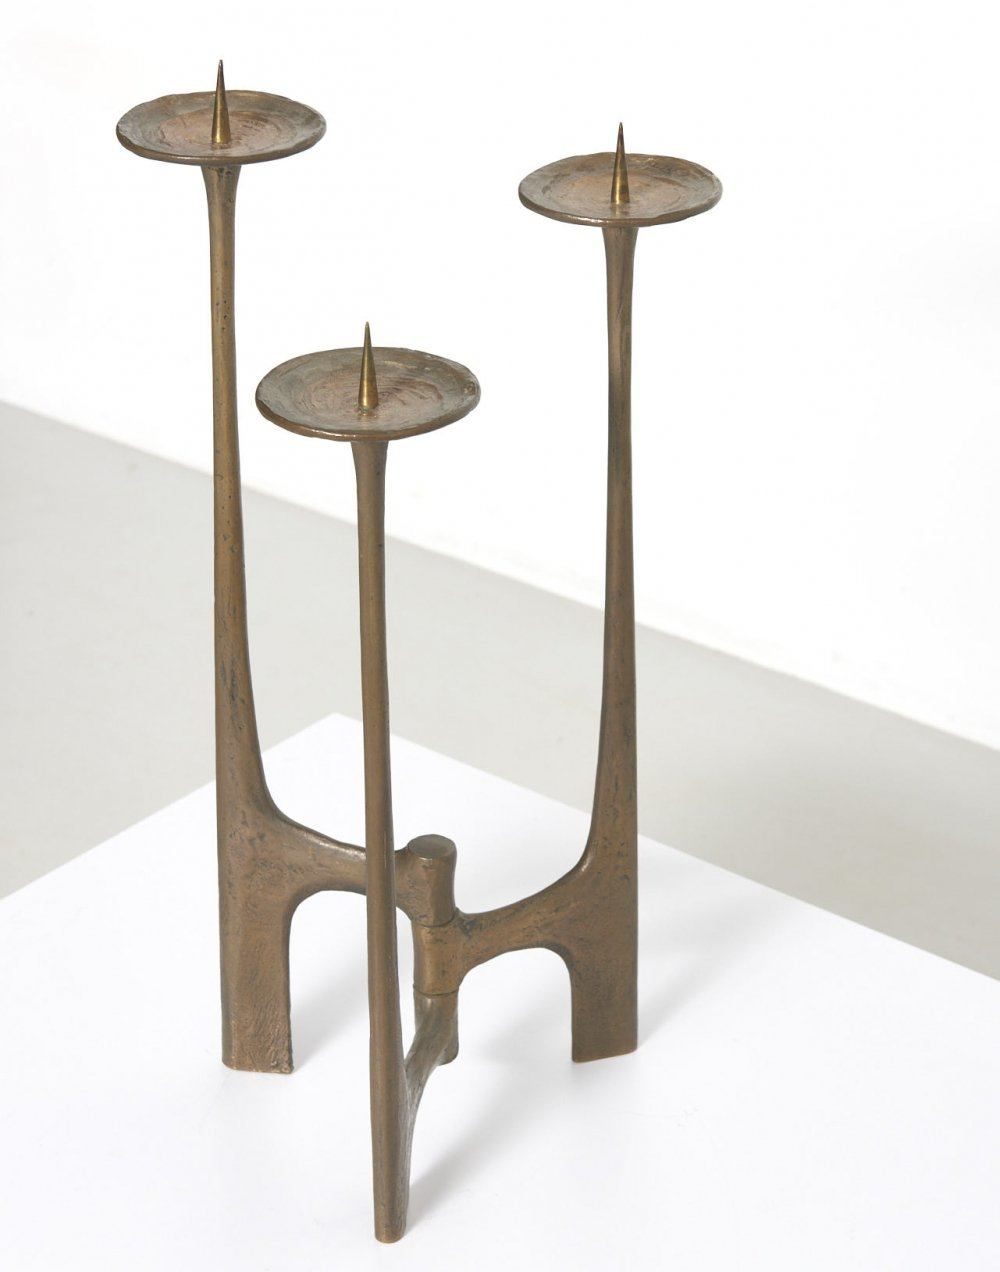 Brutalist Candle Holder by Michael Harjes, 1960